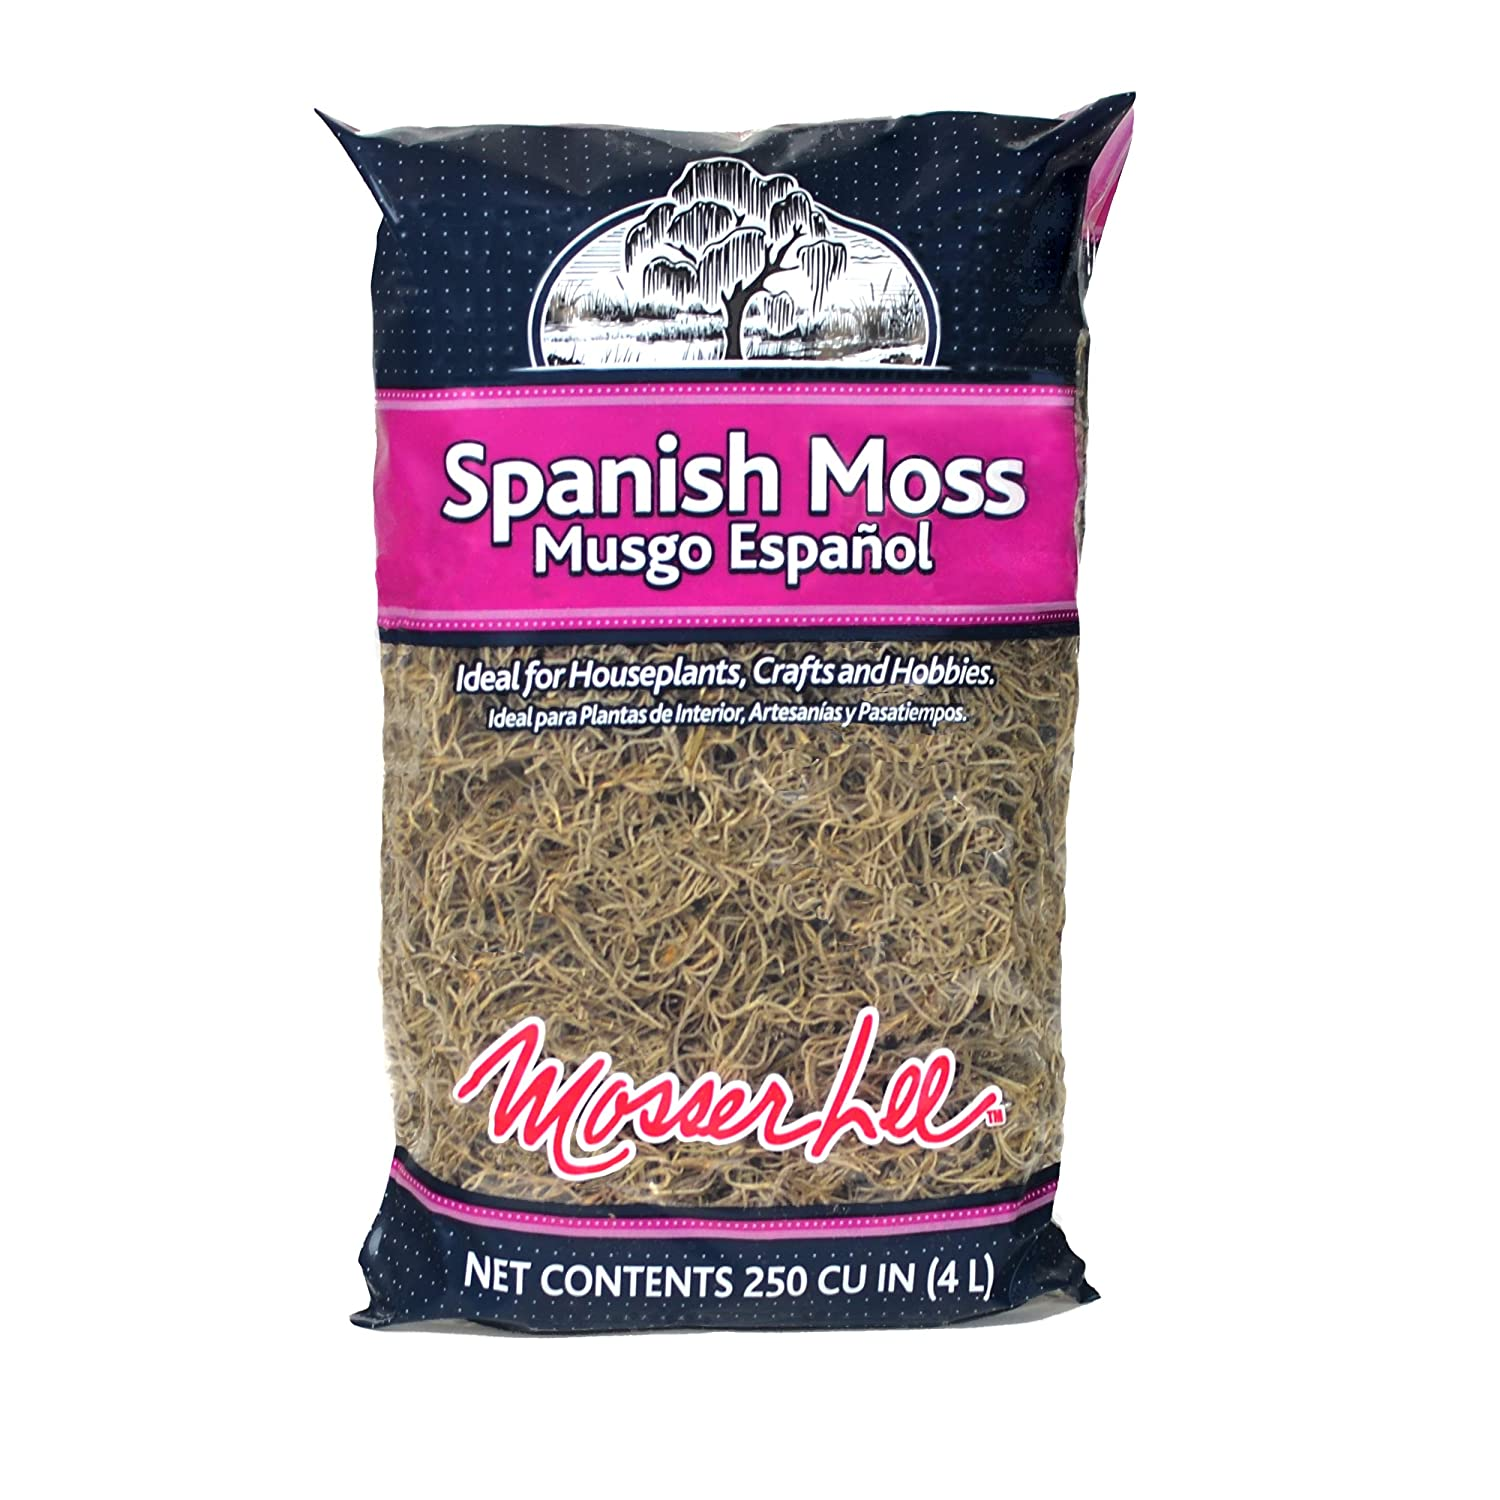 Mosser Lee ML0560 Spanish Moss, 250 cu. in.